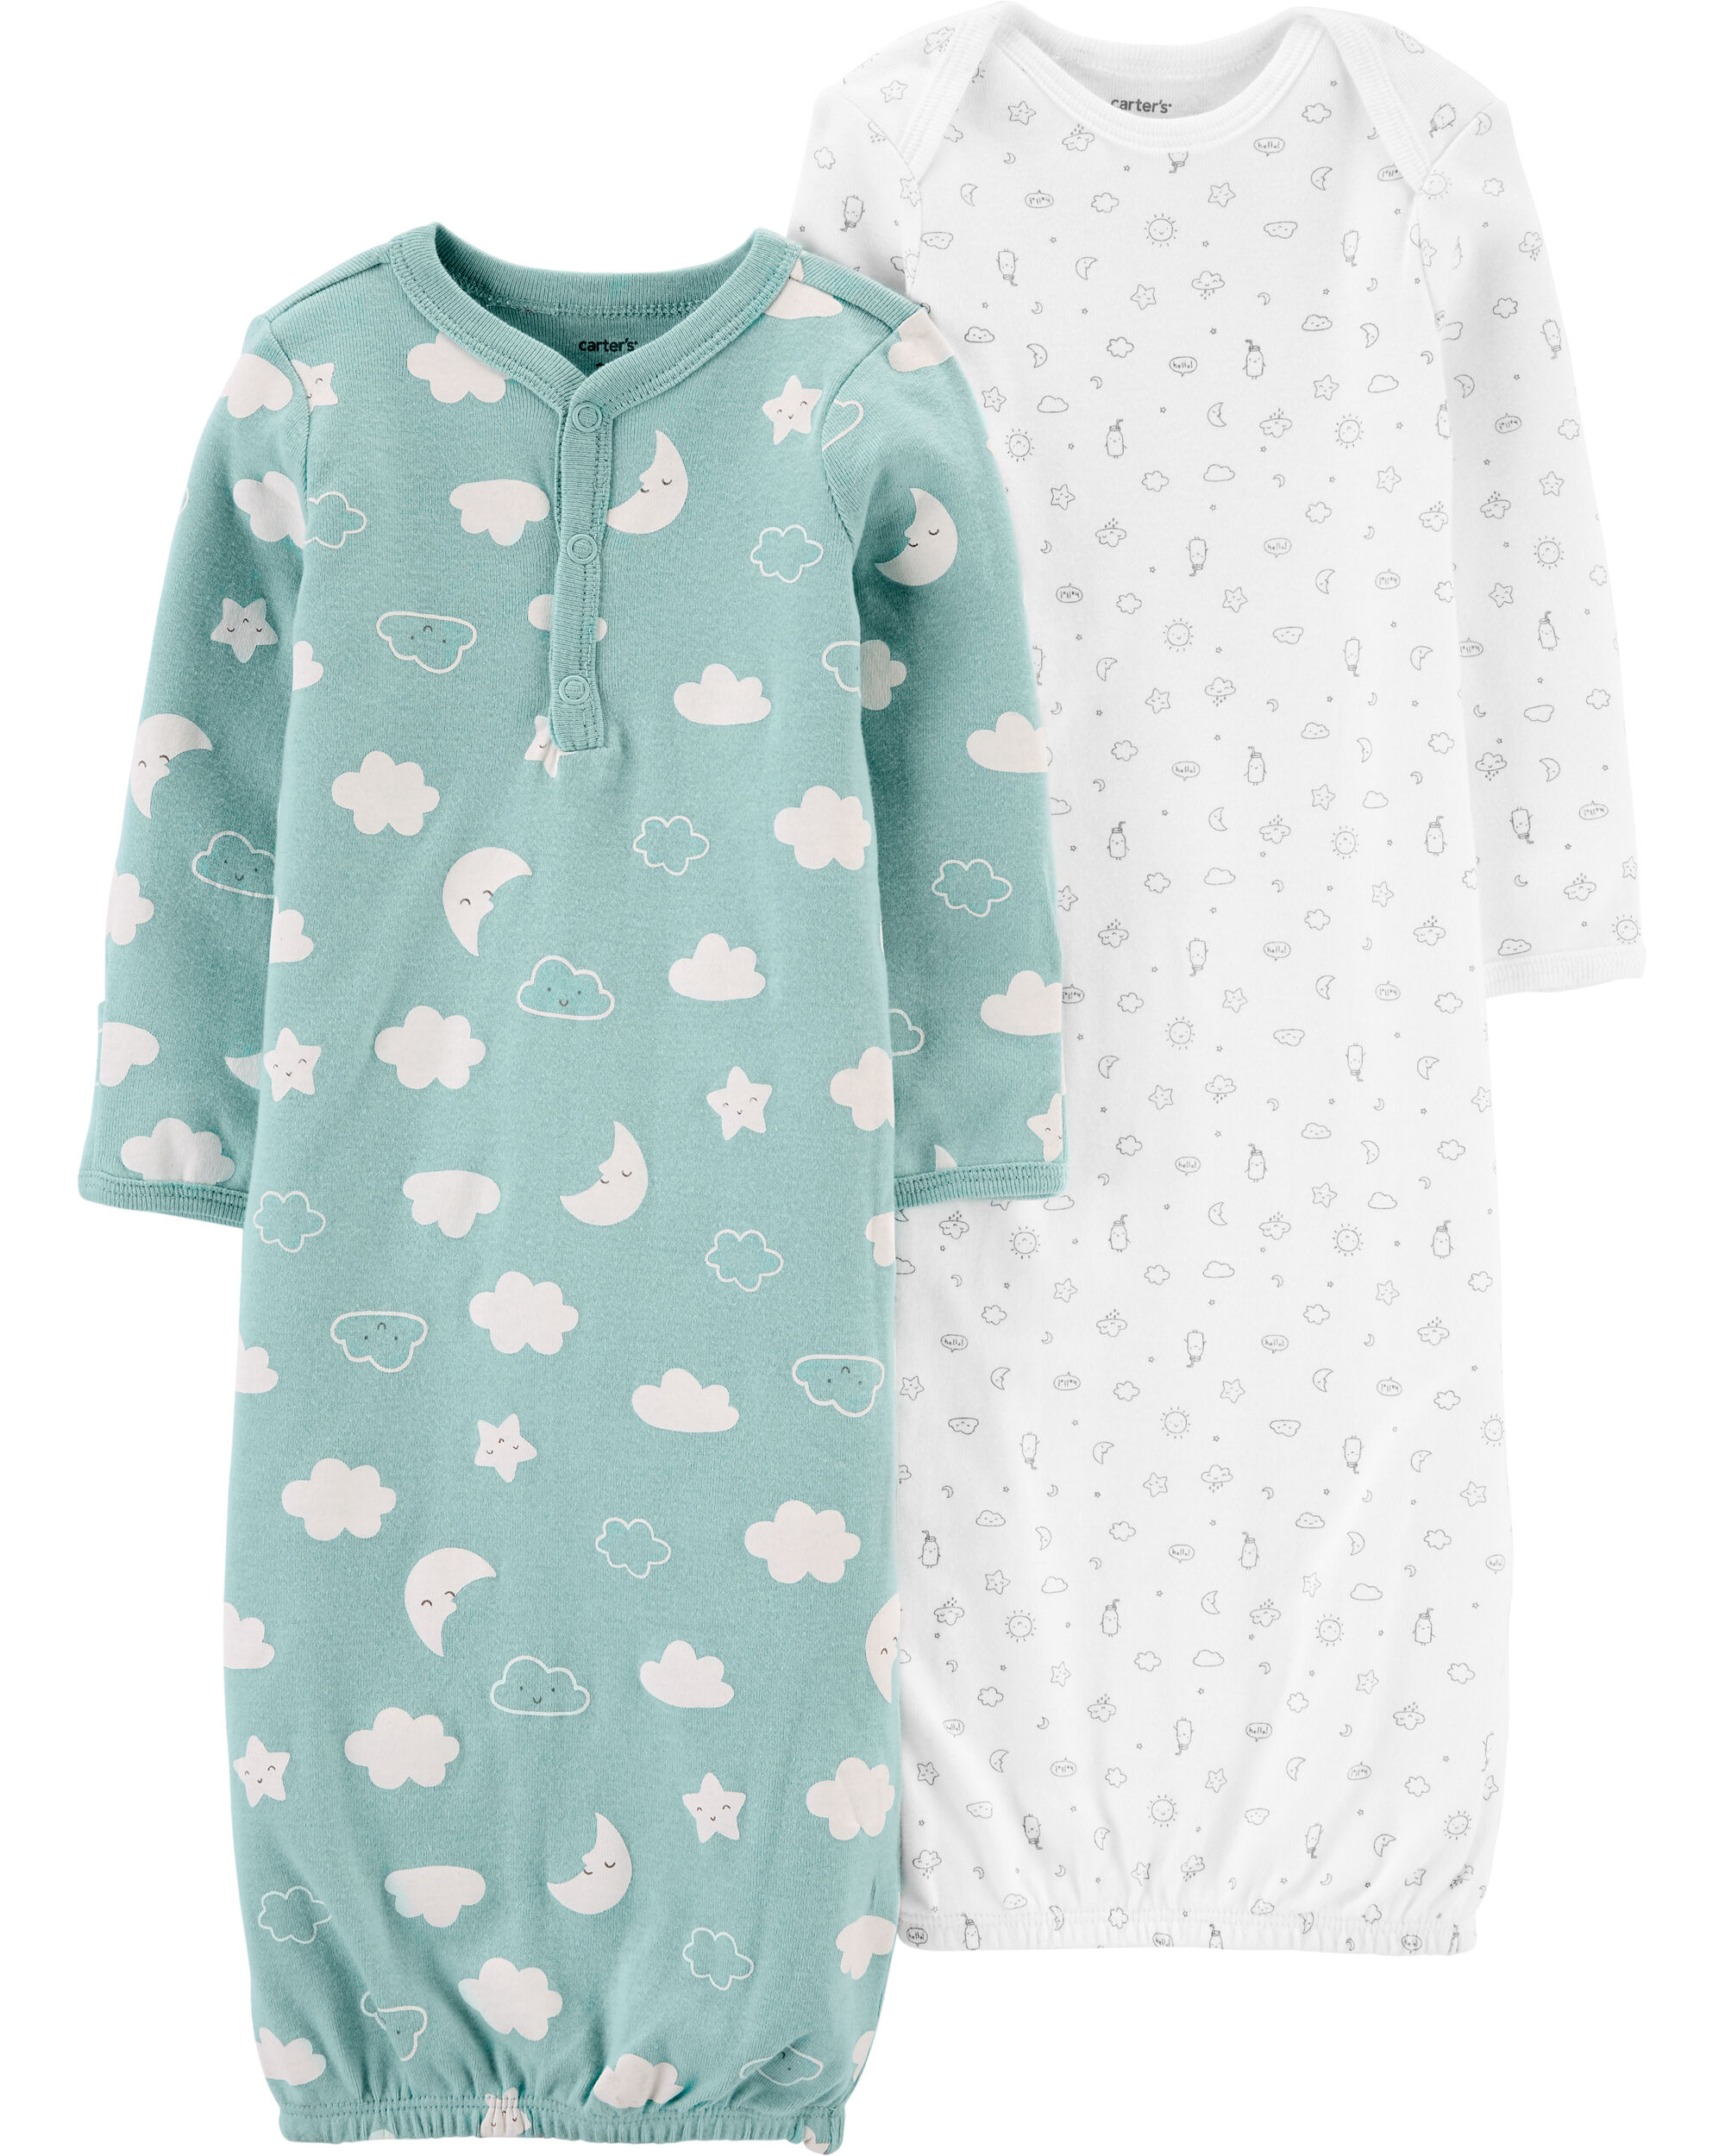 Carters 2-Pack Sleeper Gowns